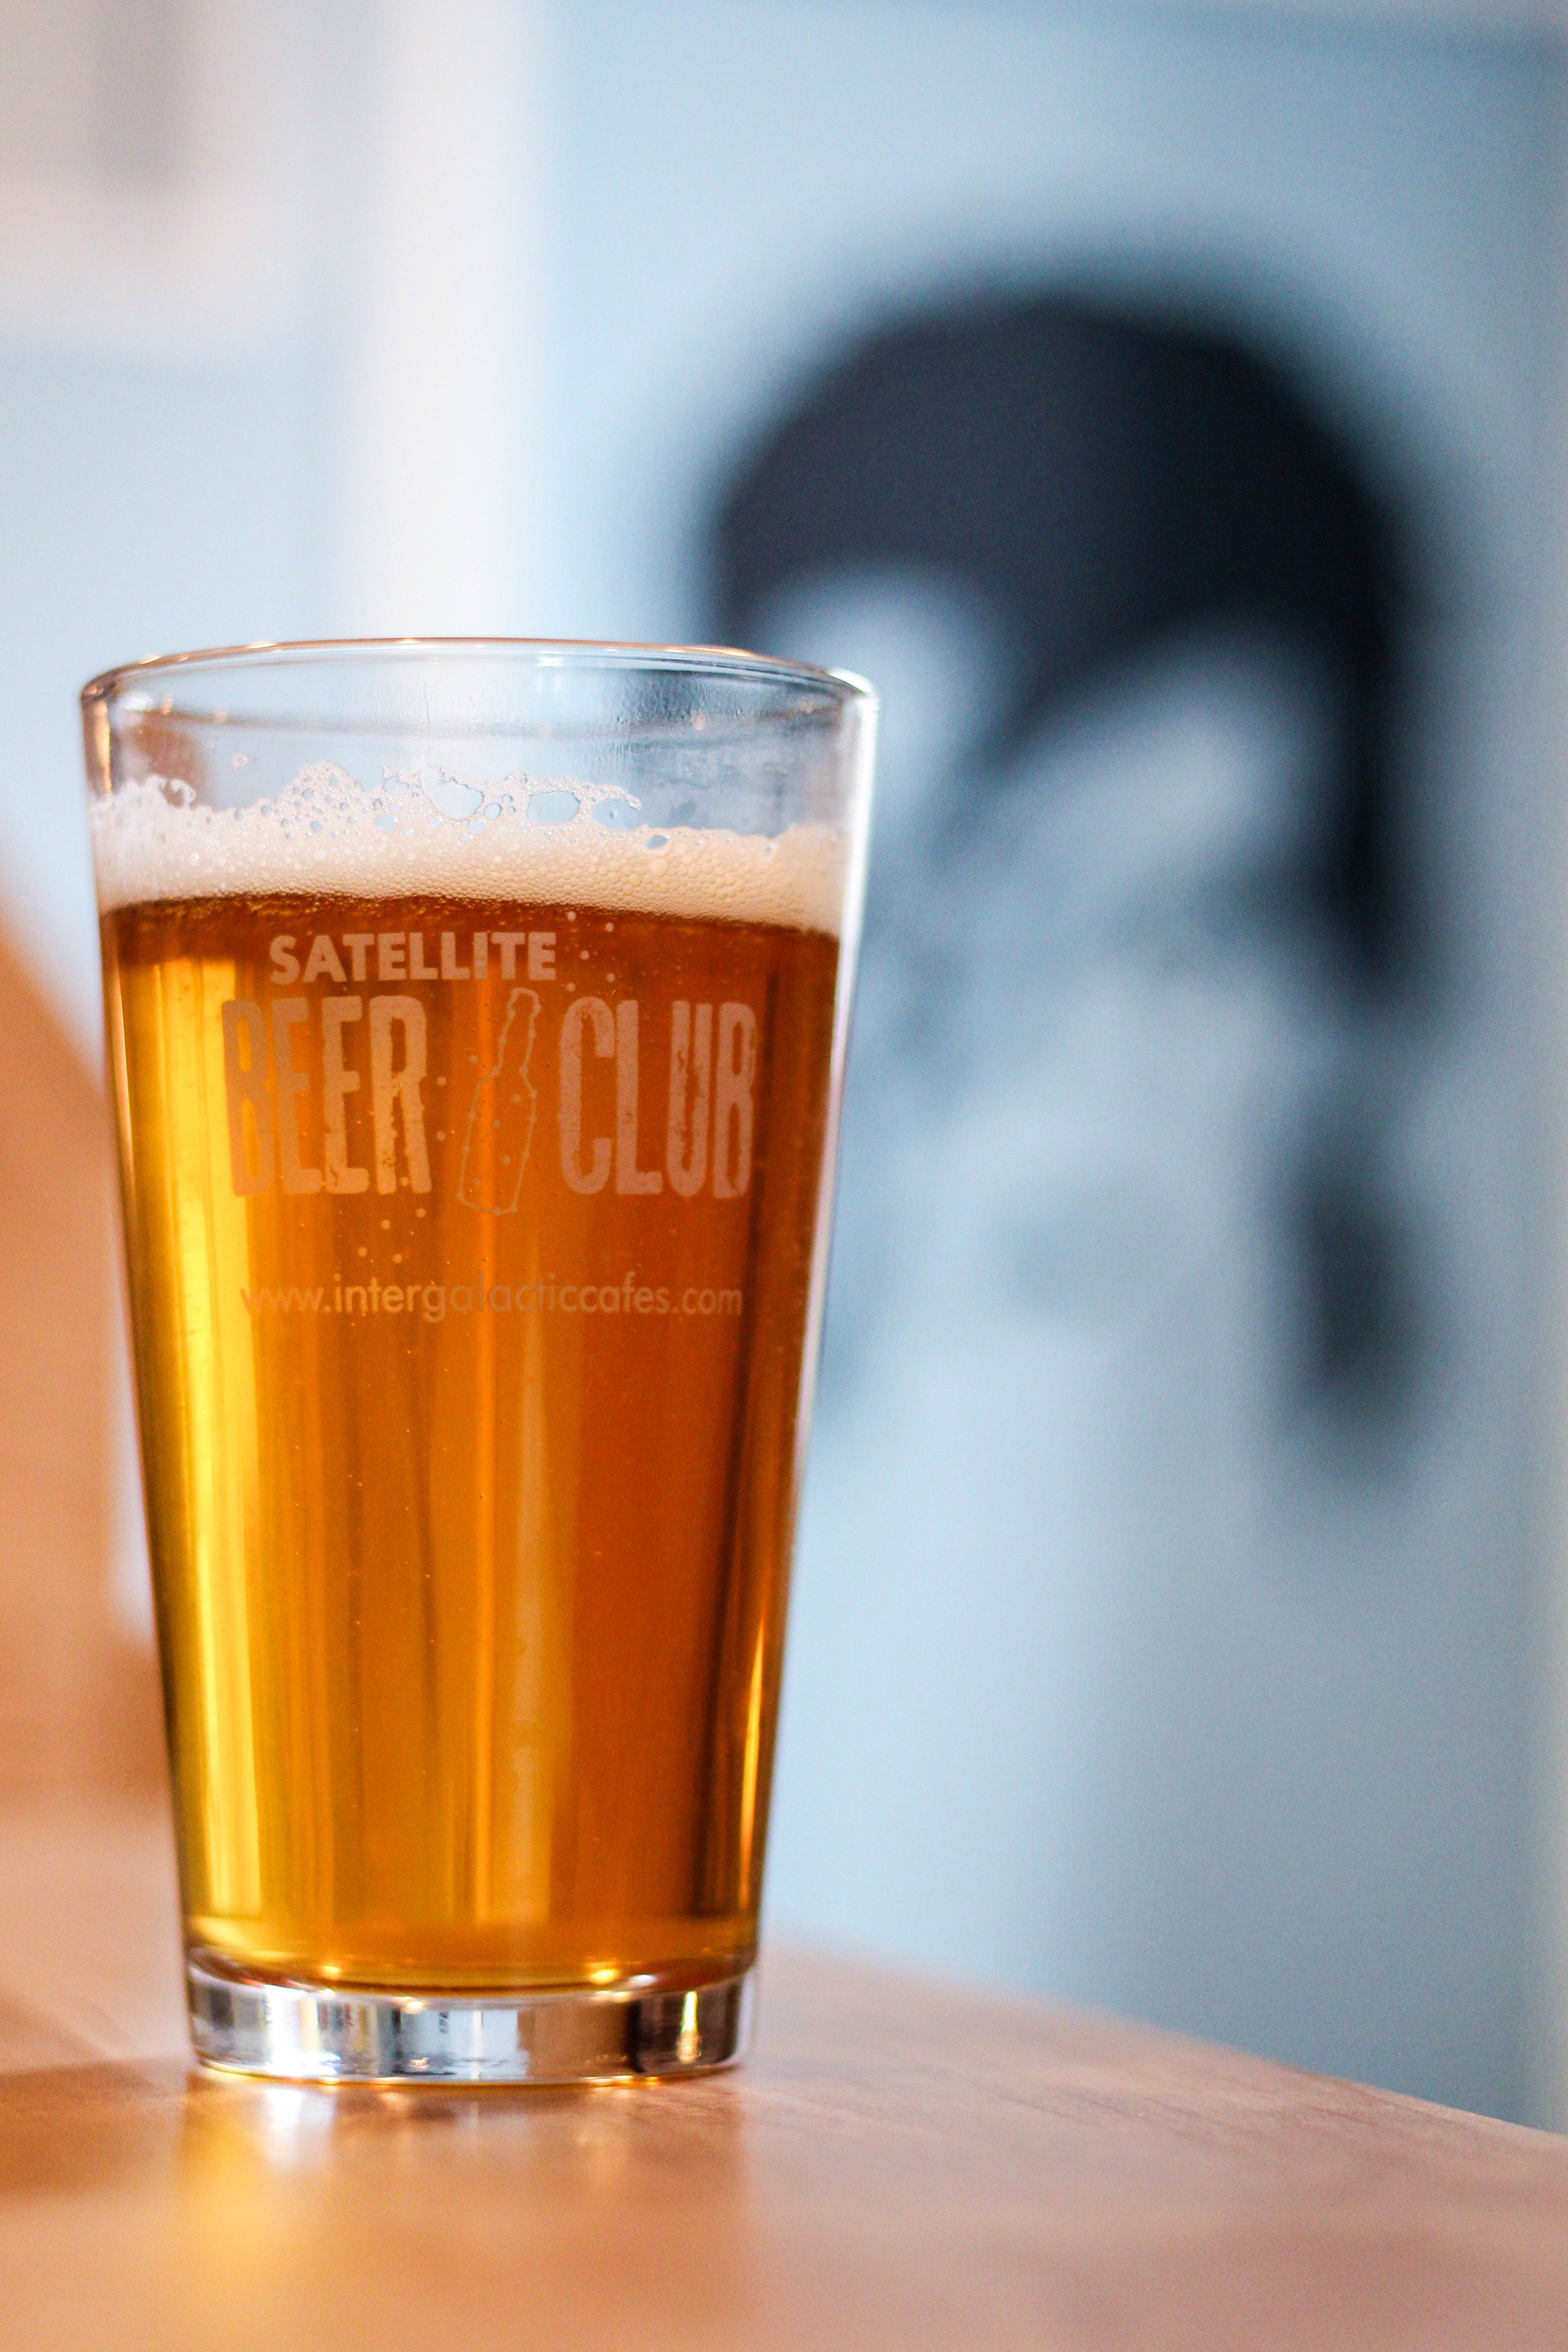 Beer in Satellite Beer Club glass on counter